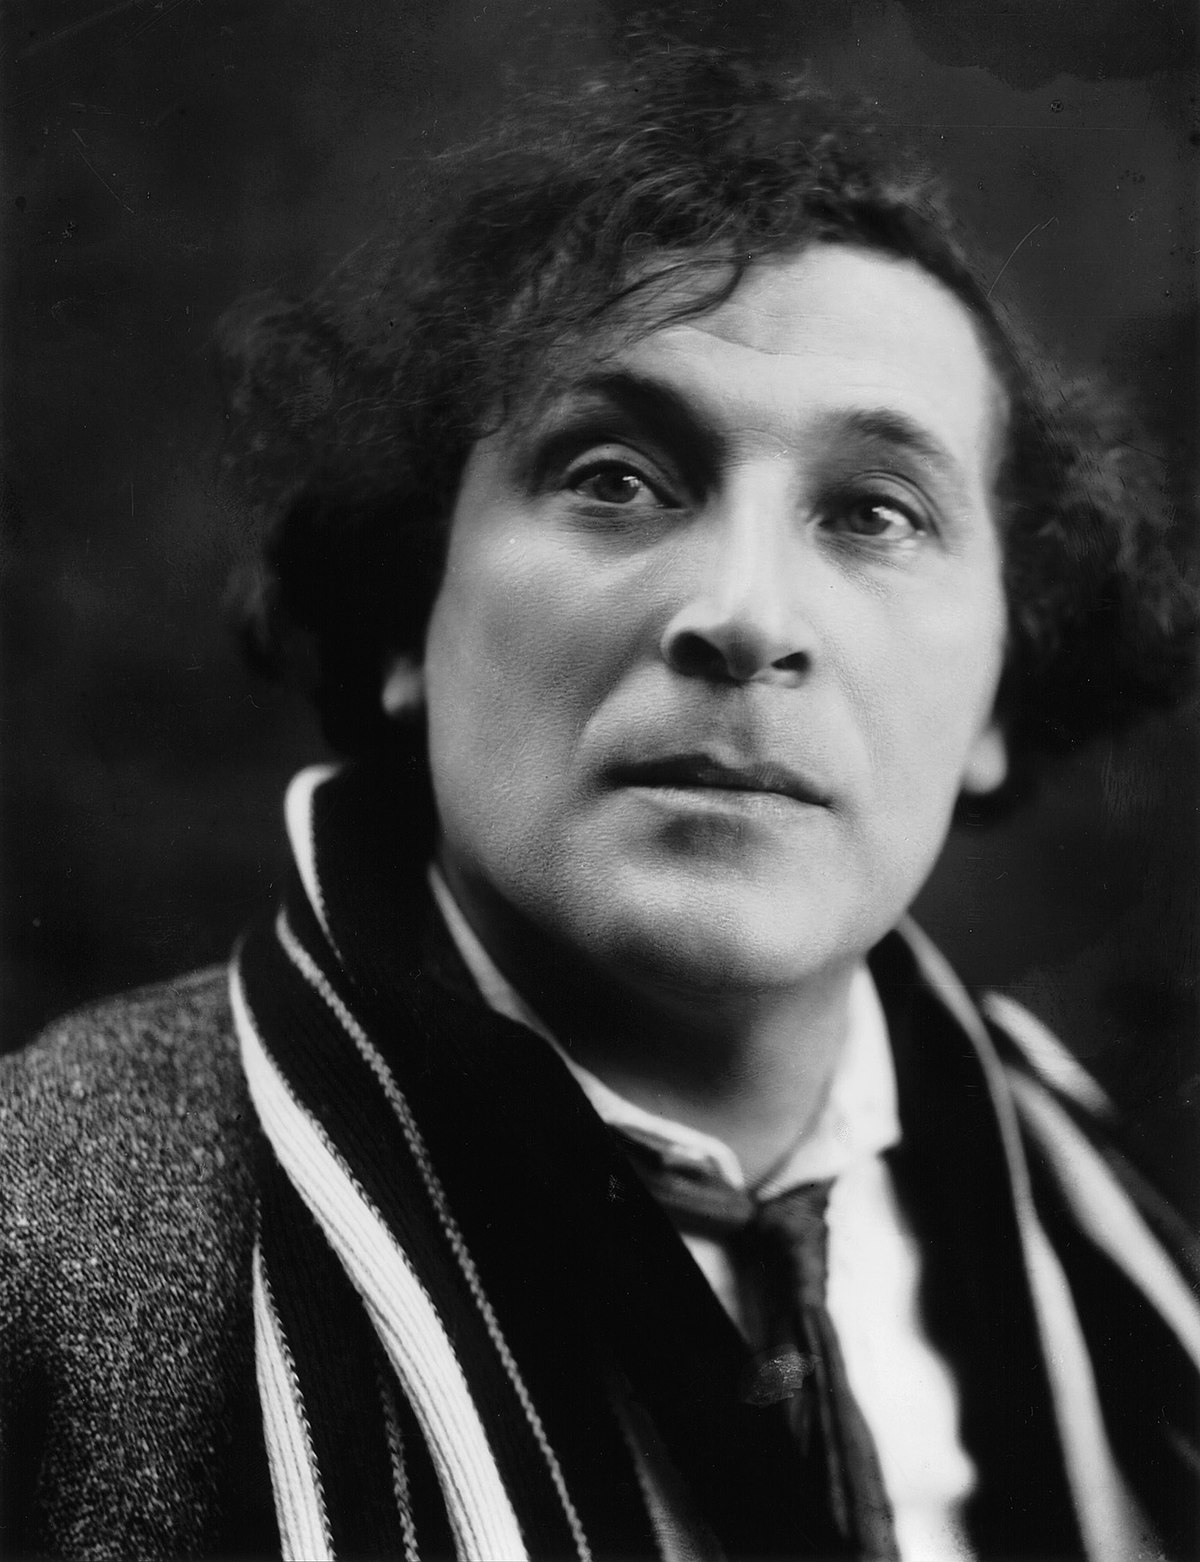 qui est marc chagall : marc chagall interview :  marc chagall hobbies en 2020/2021